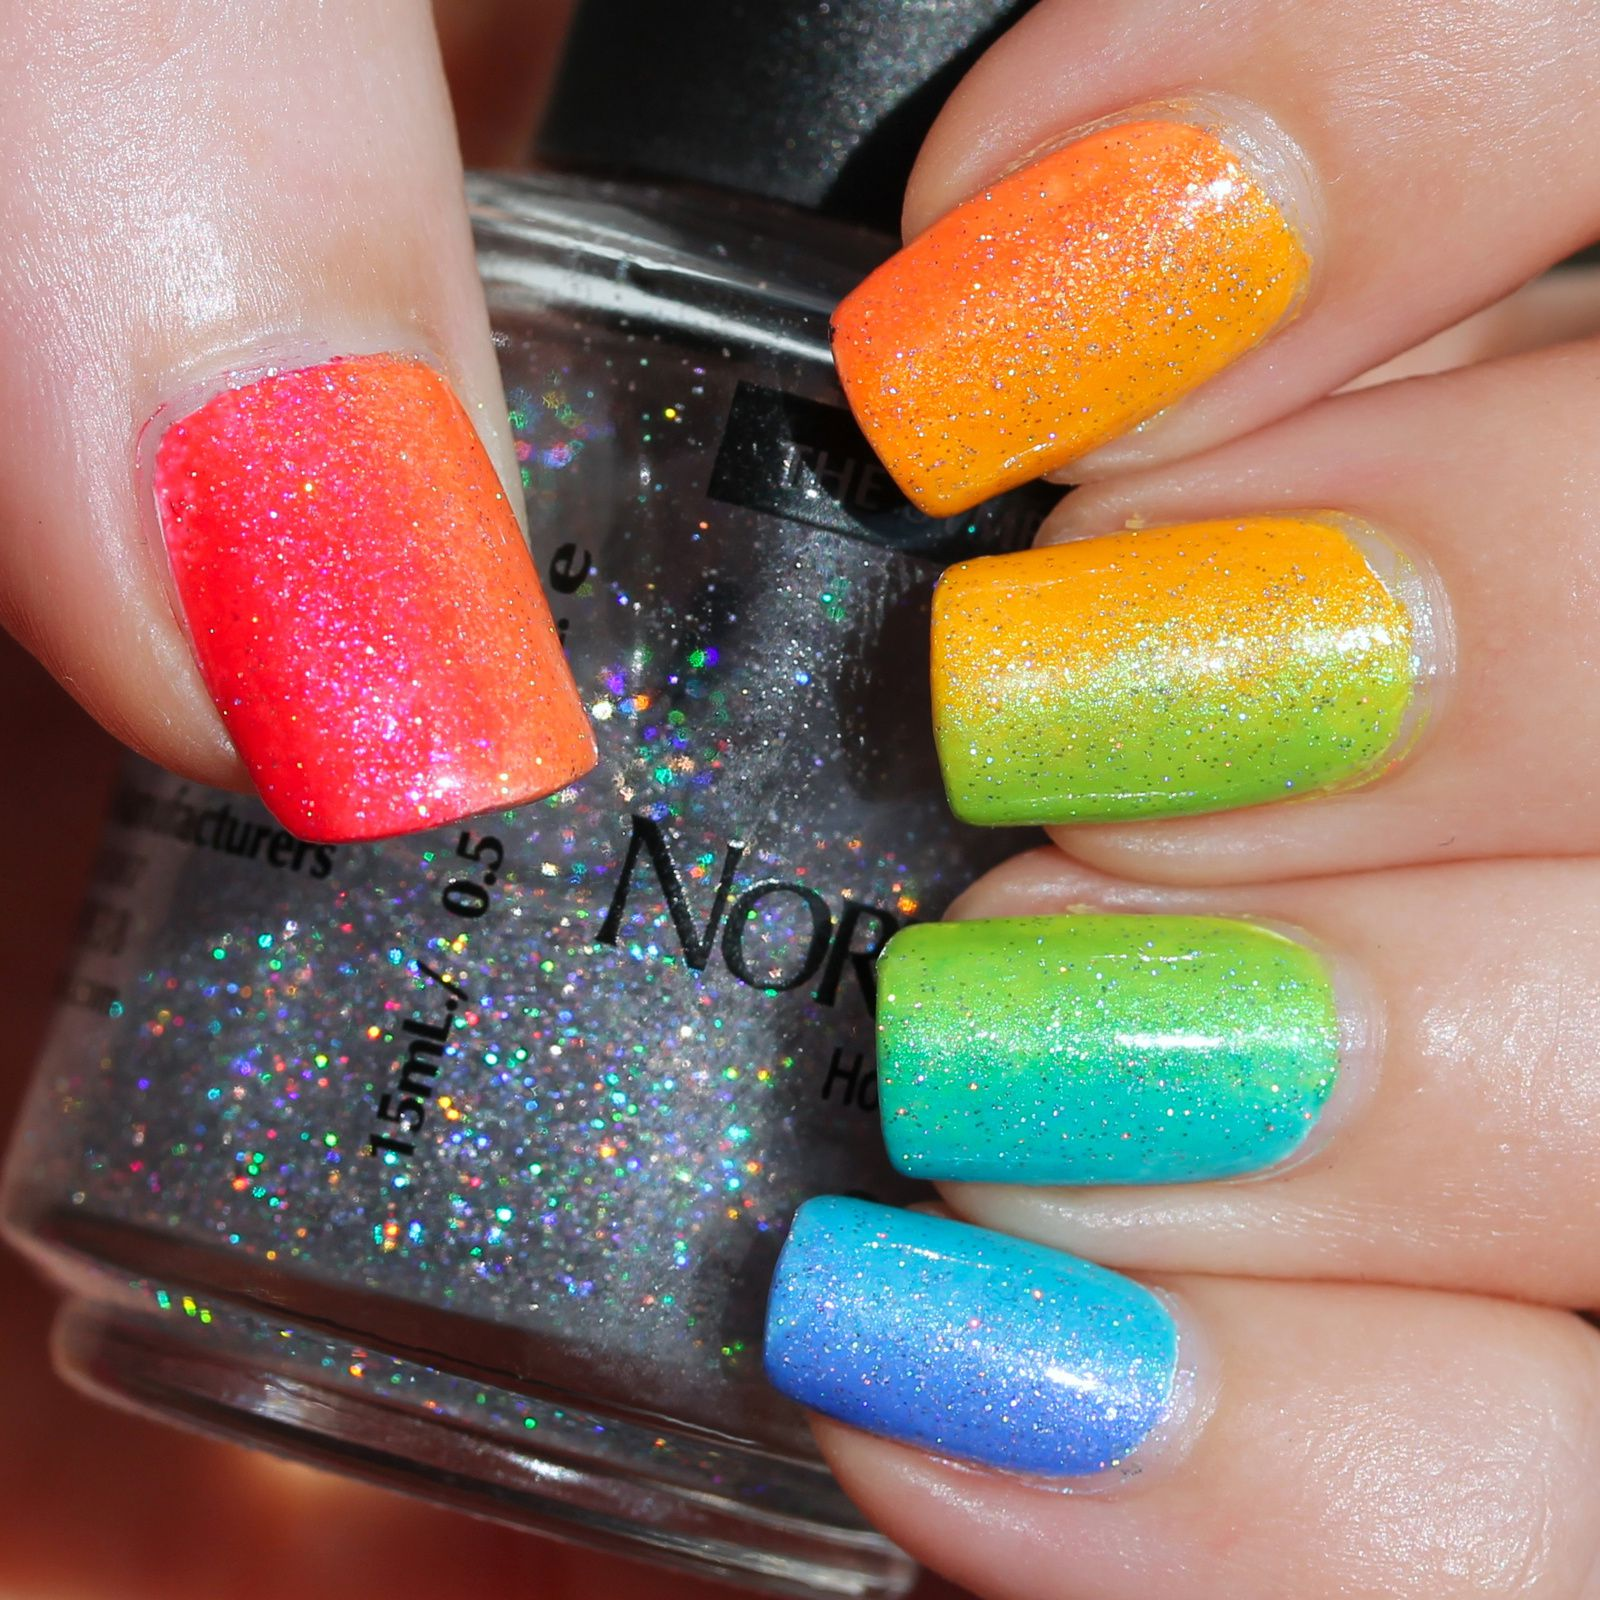 Duri Rejuvacote / Finger Paints Base Coat for Neons / Shleee Polish Matangi, Tiger Lily, Without You I'm Nothing, Ecto Cooler, Ahh Bikini Bottom & Enchanted Cupcake gradient / HK Girl Top Coat